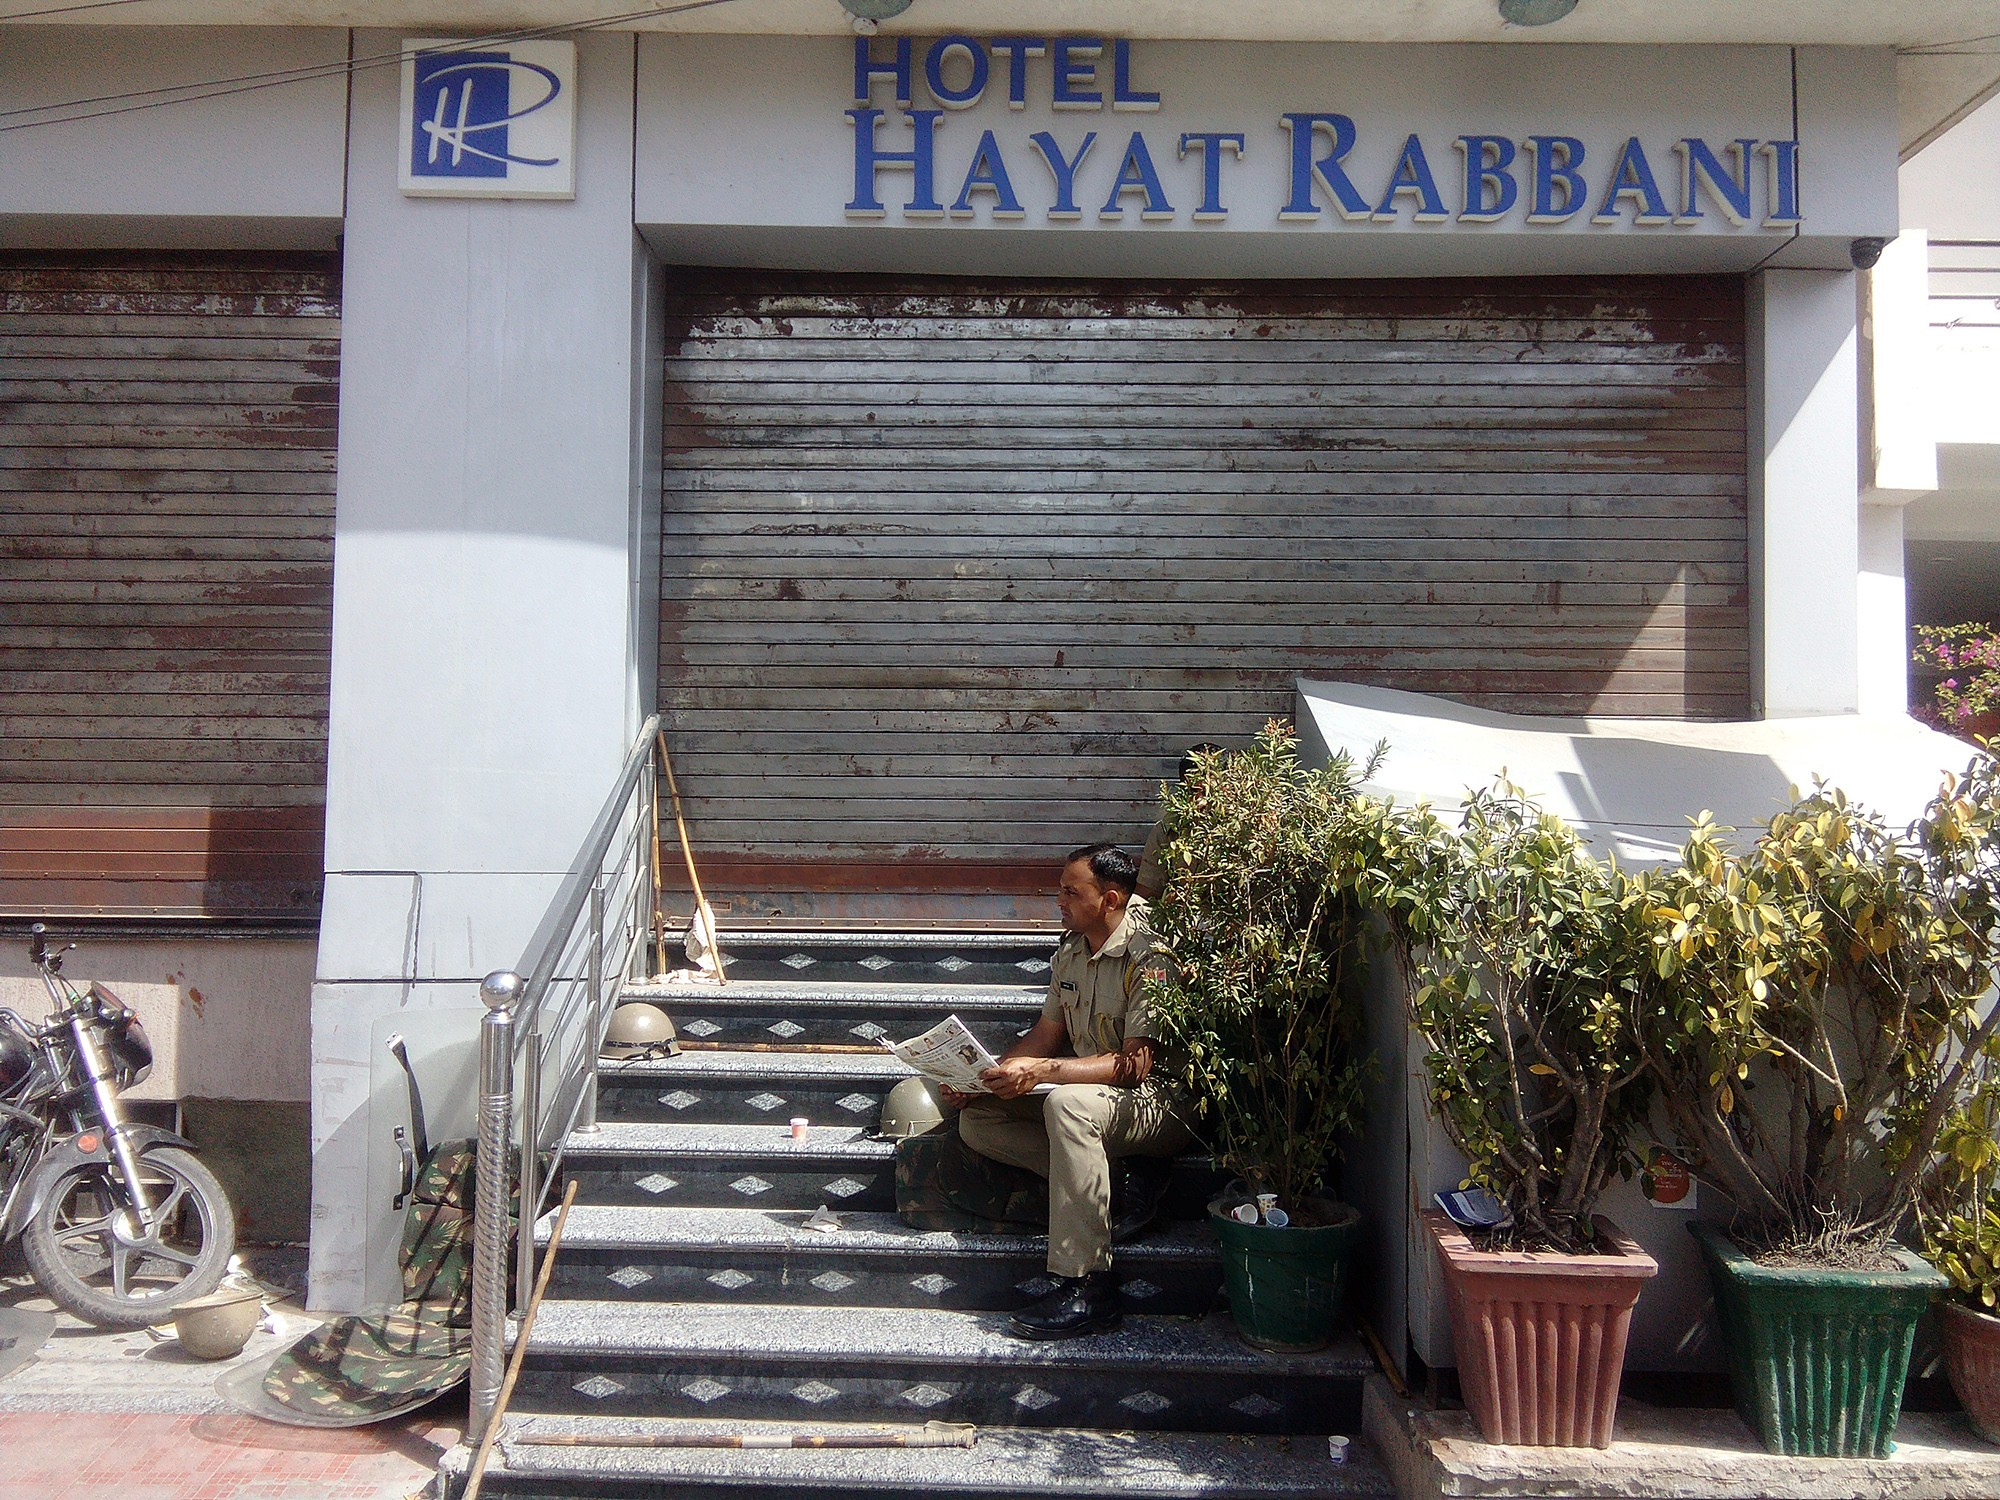 Hotel Hayat Rabbani in Jaipur was shut down for months after the episode in March. Photo: Abhishek Dey